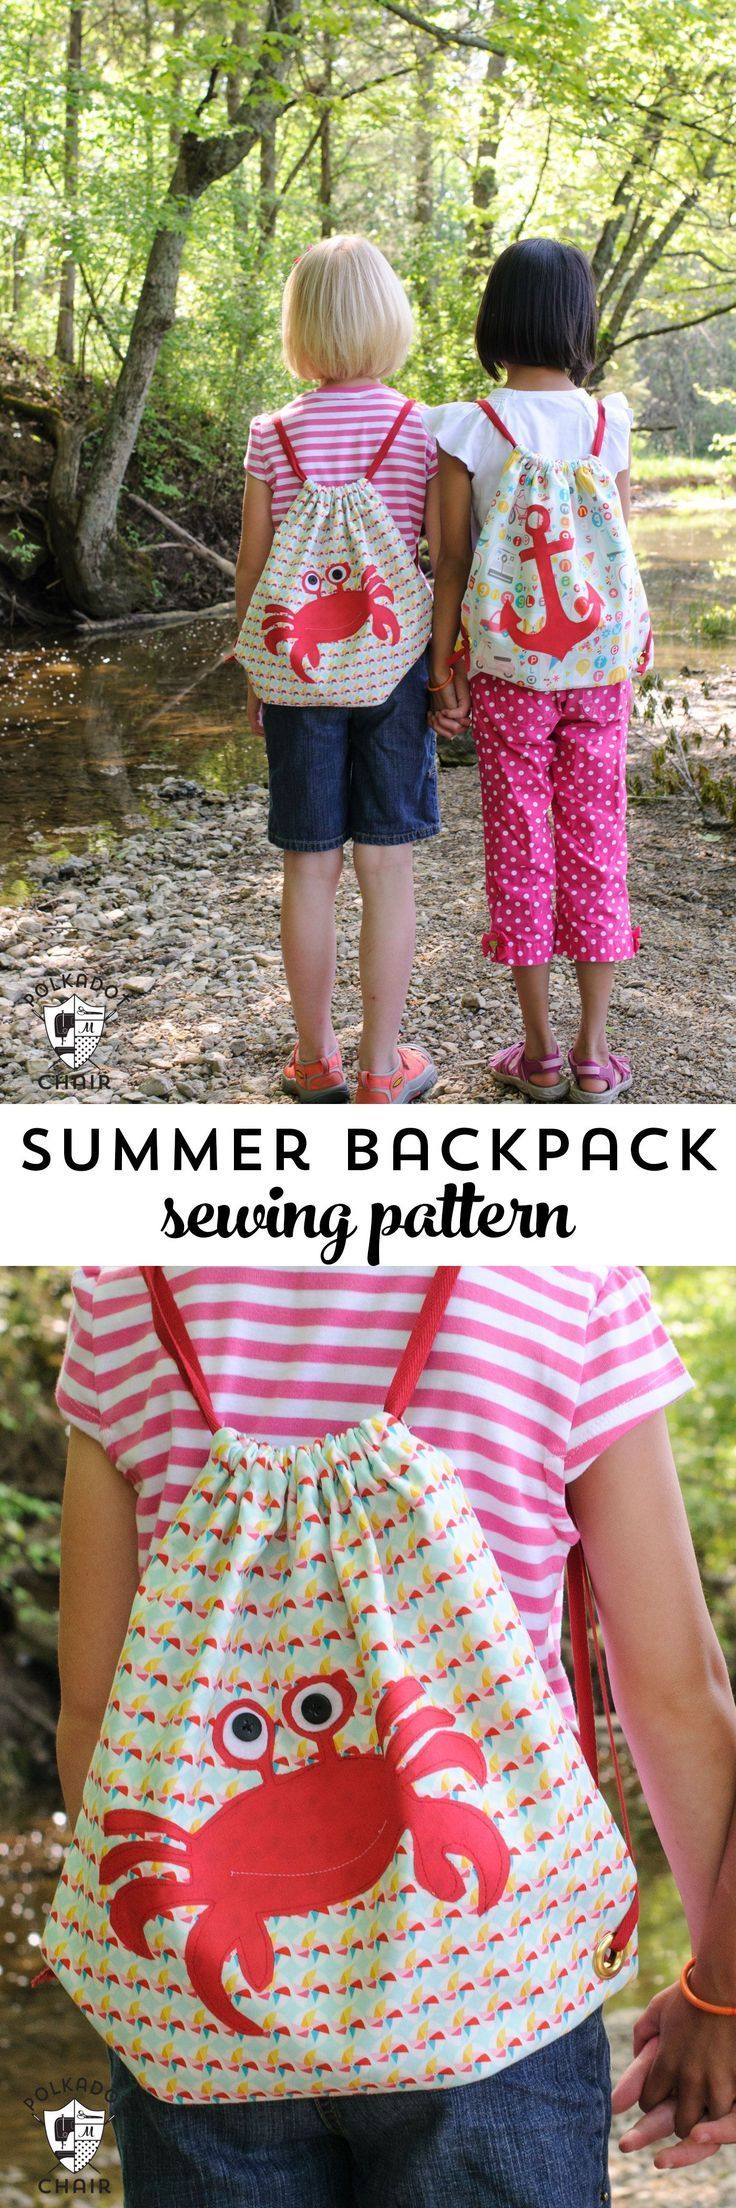 Free Sewing Pattern for a simple summer drawstring backpack for kids. Even inclu...